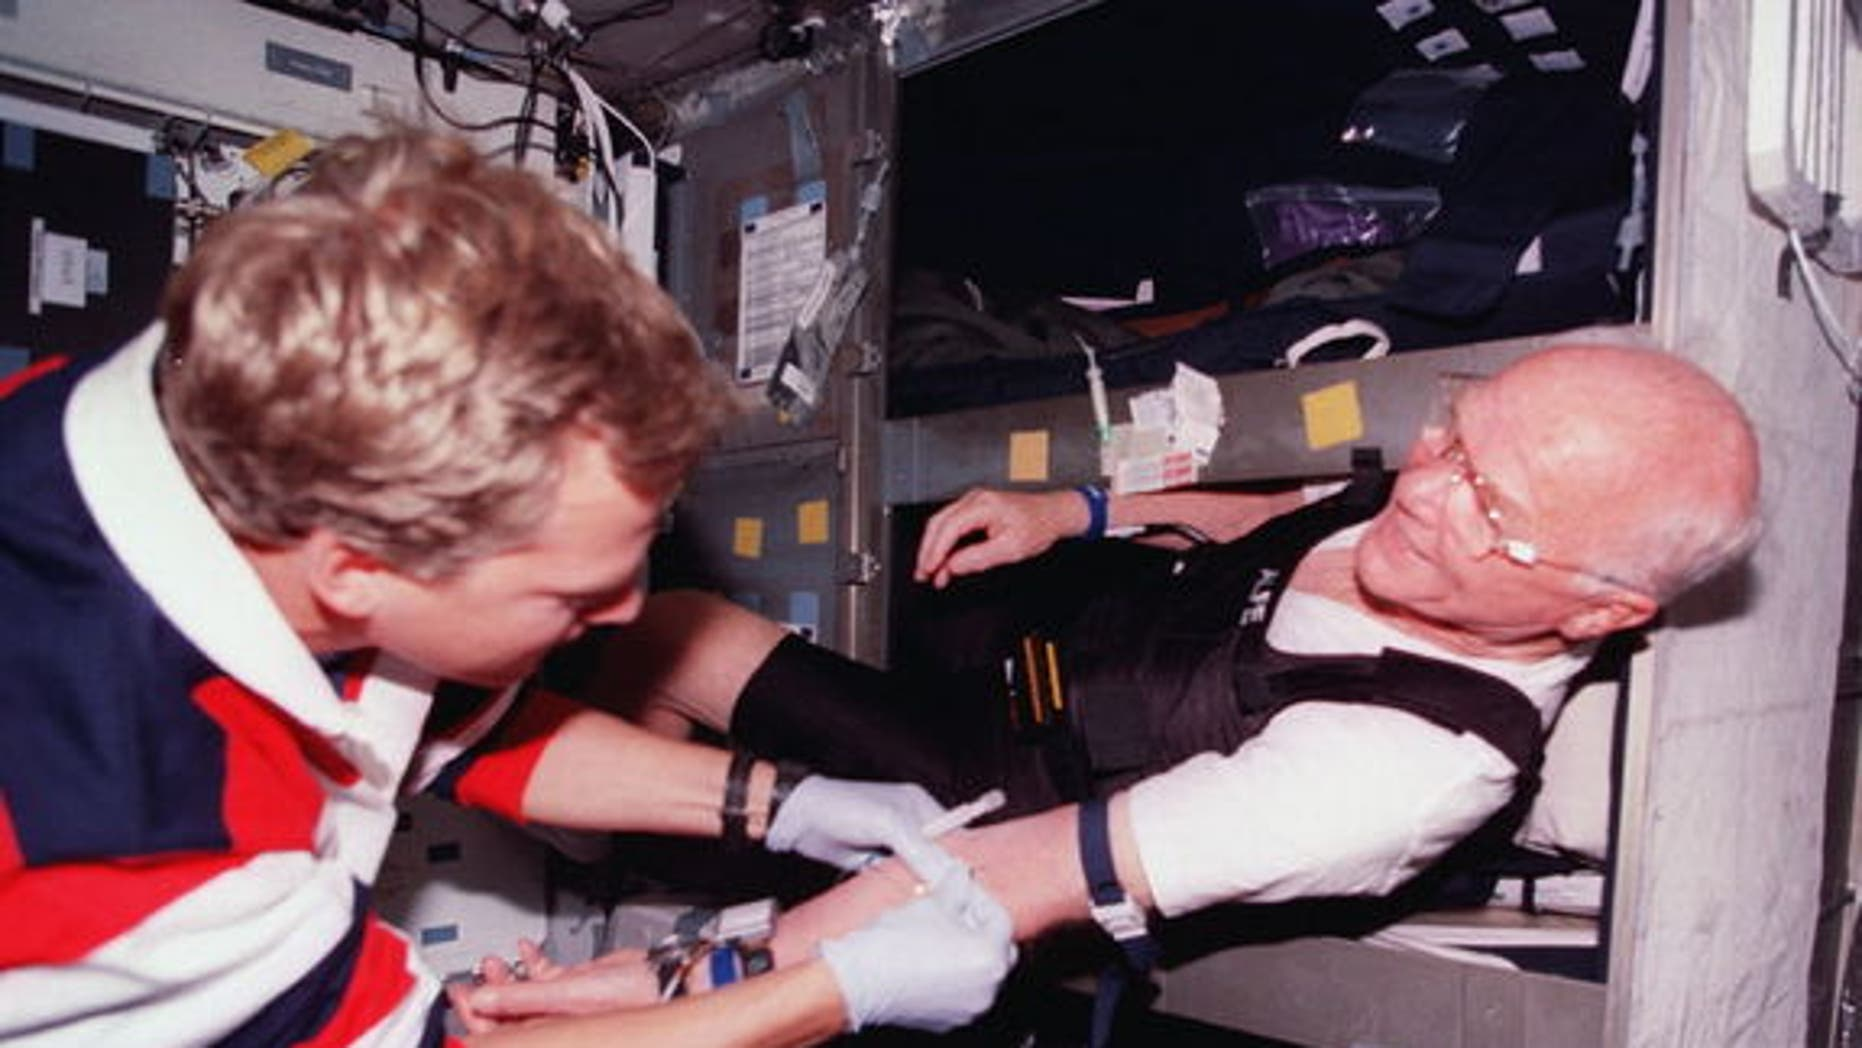 Astronaut John Glenn (right) gets bloodwork done in his bunk aboard space shuttle Discovery in 1998. About half of astronauts require sleep medication at some point during their flights, NASA said.